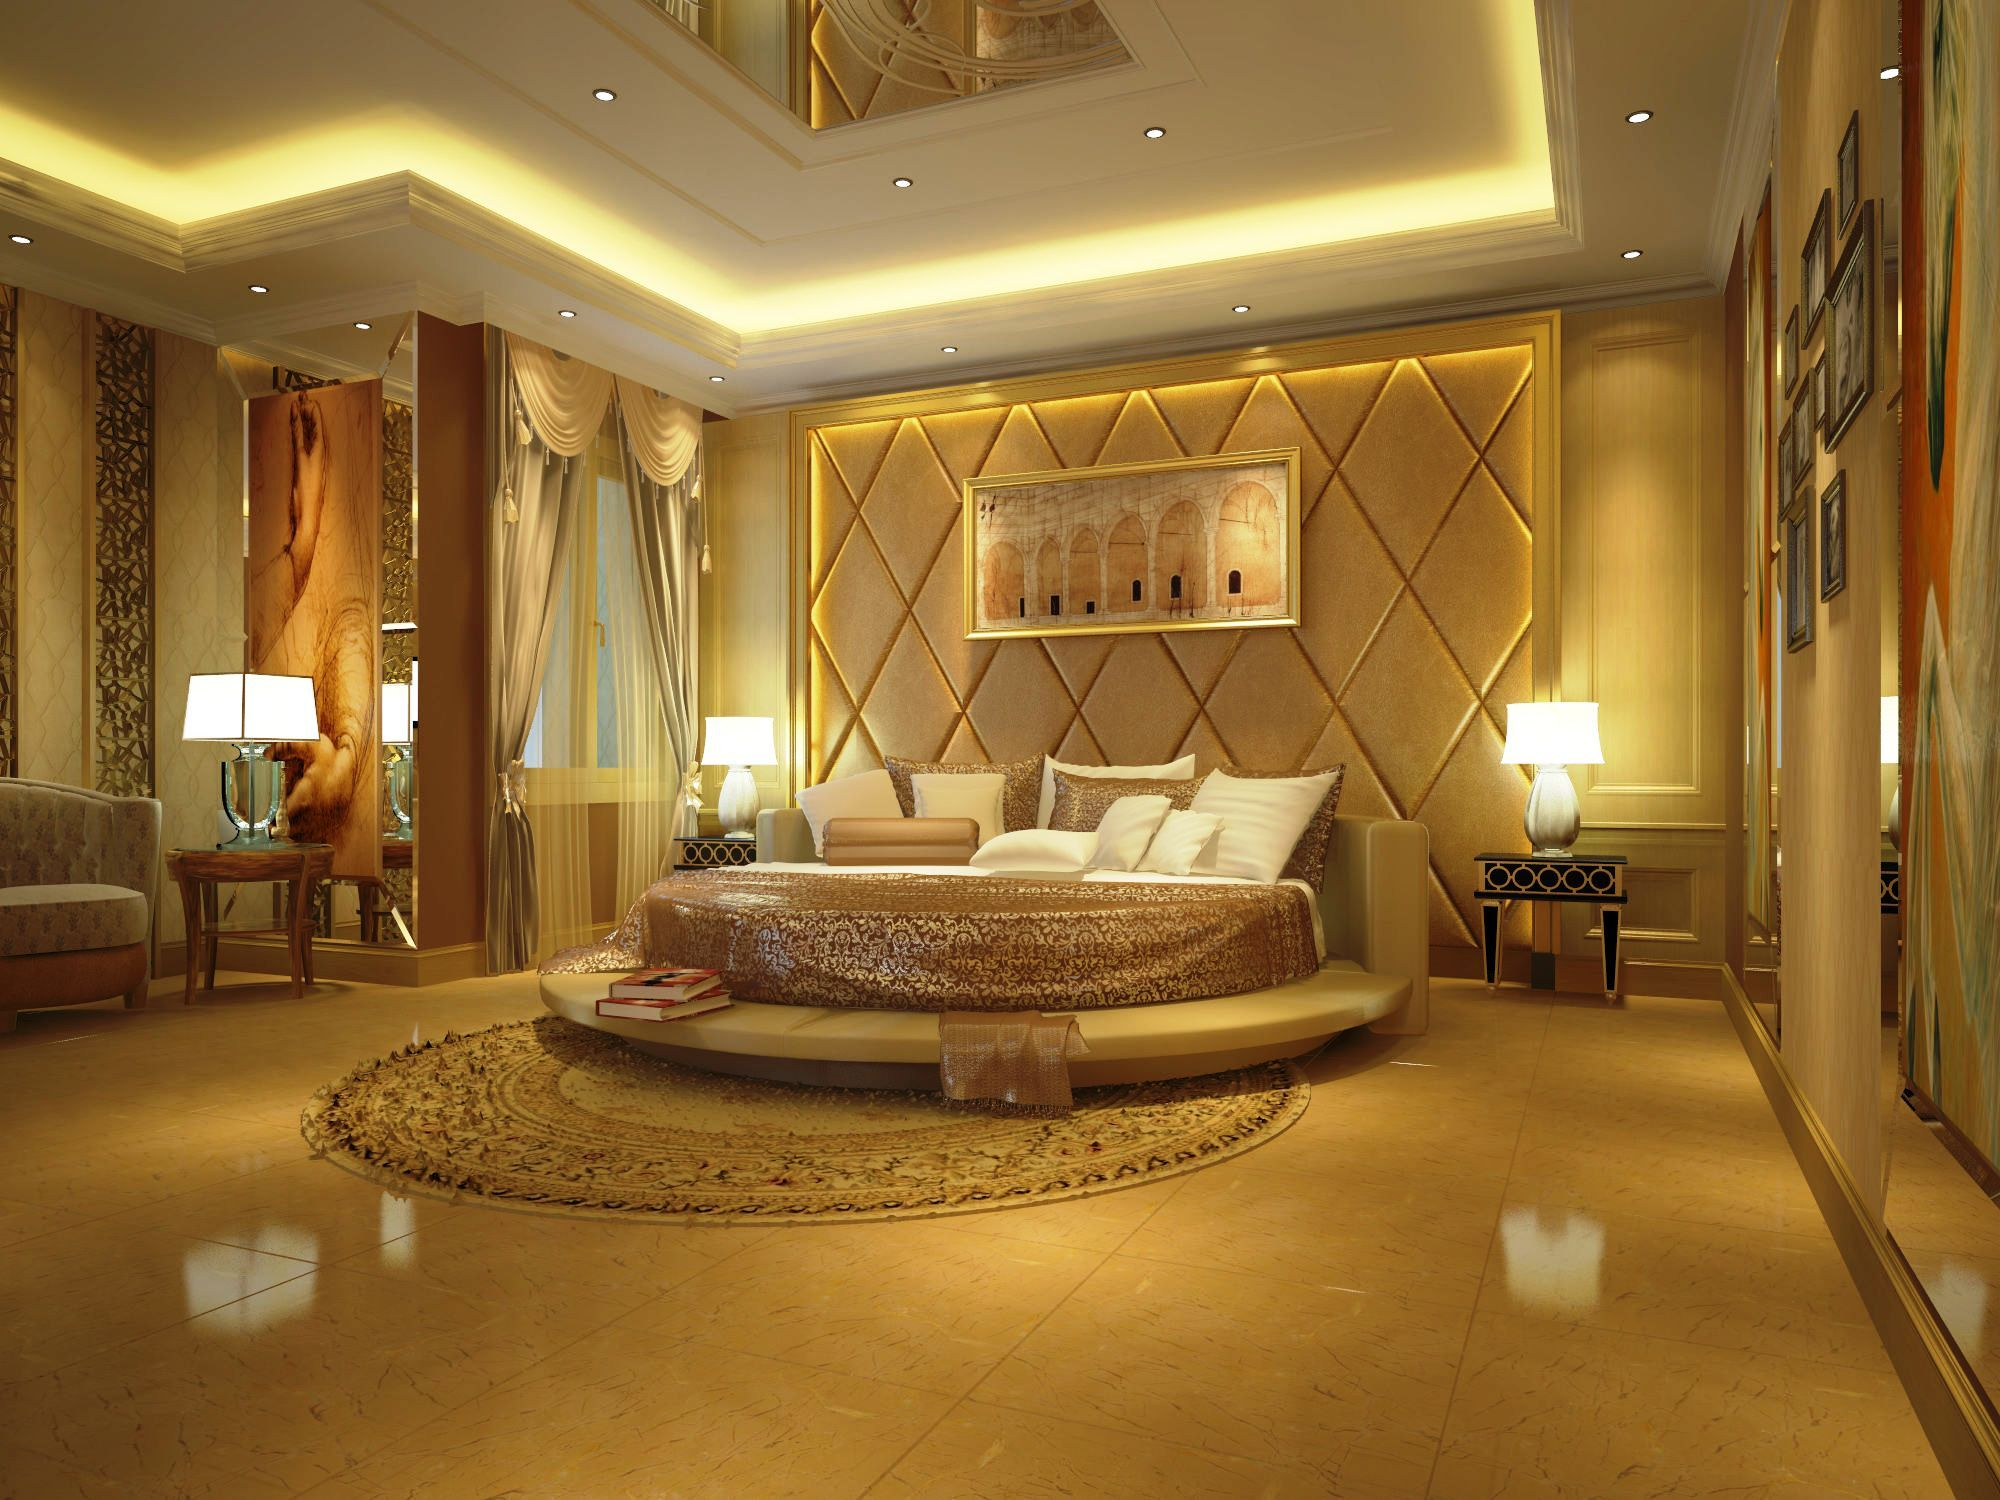 Luxury Bedrooms Interior Design Awesome A Master Bedroom Fit For A King & Queendescription From Inspiration Design